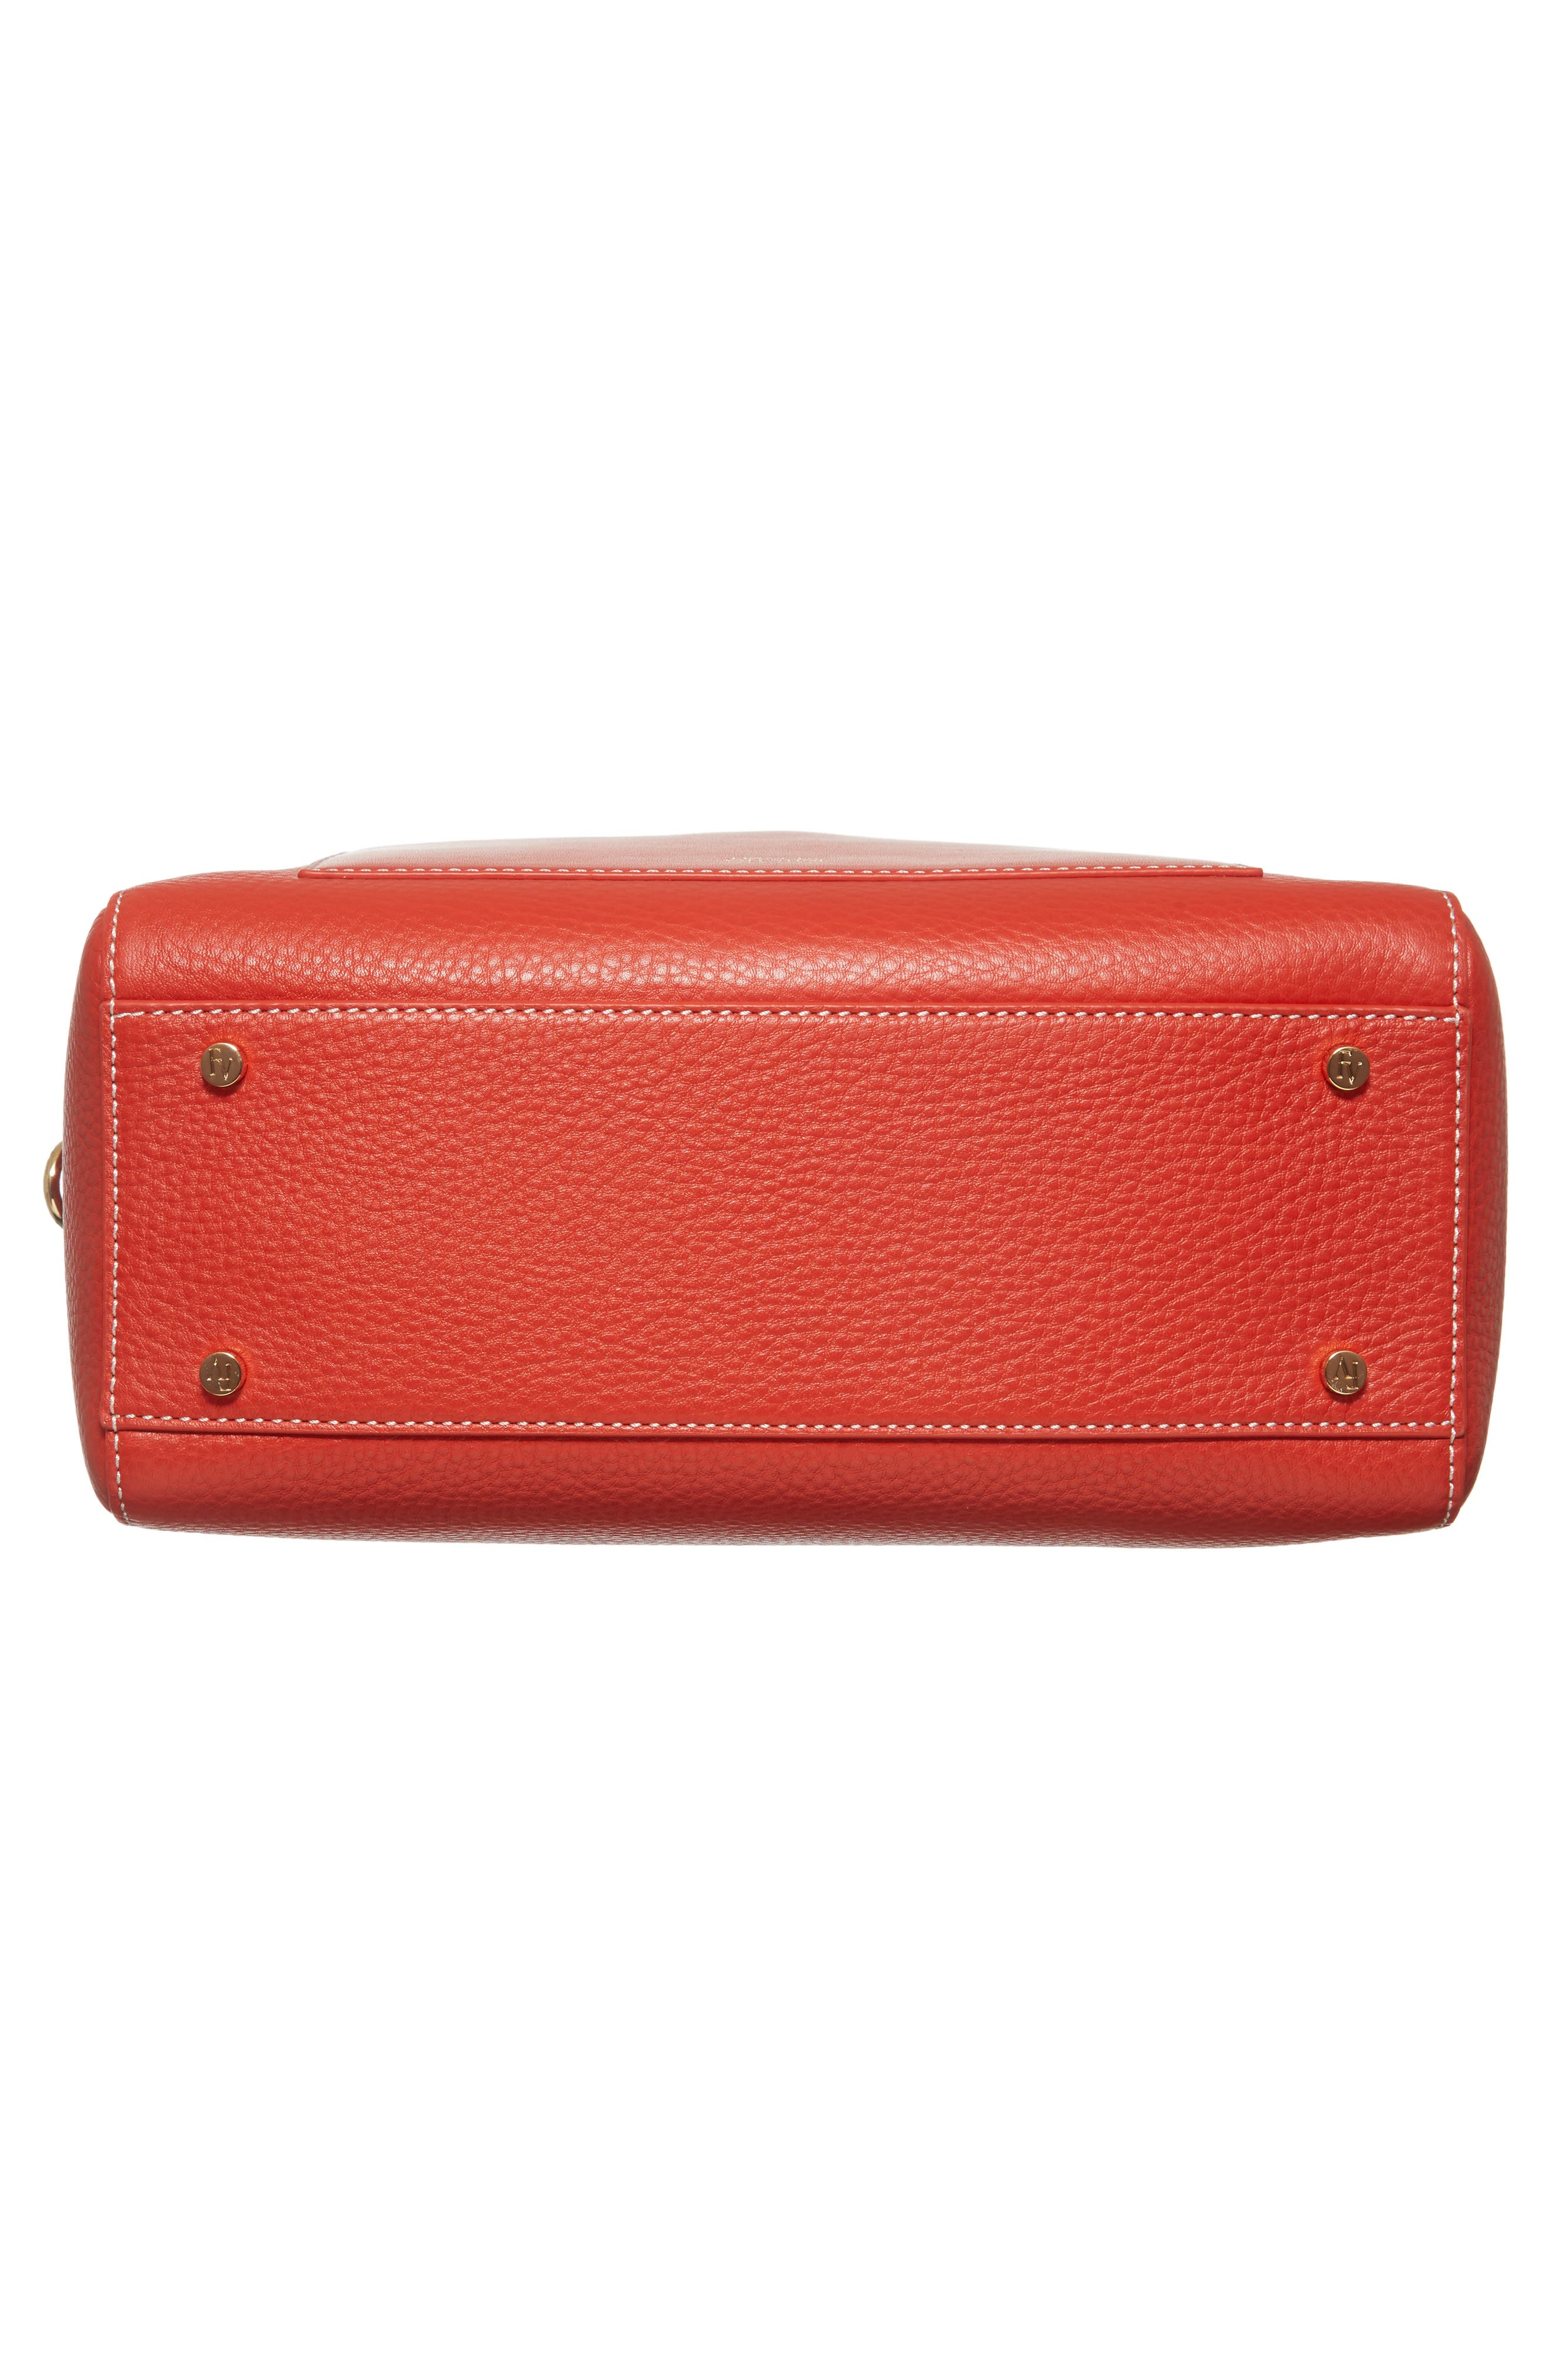 Medium Maddy Satchel,                             Alternate thumbnail 8, color,                             Coral